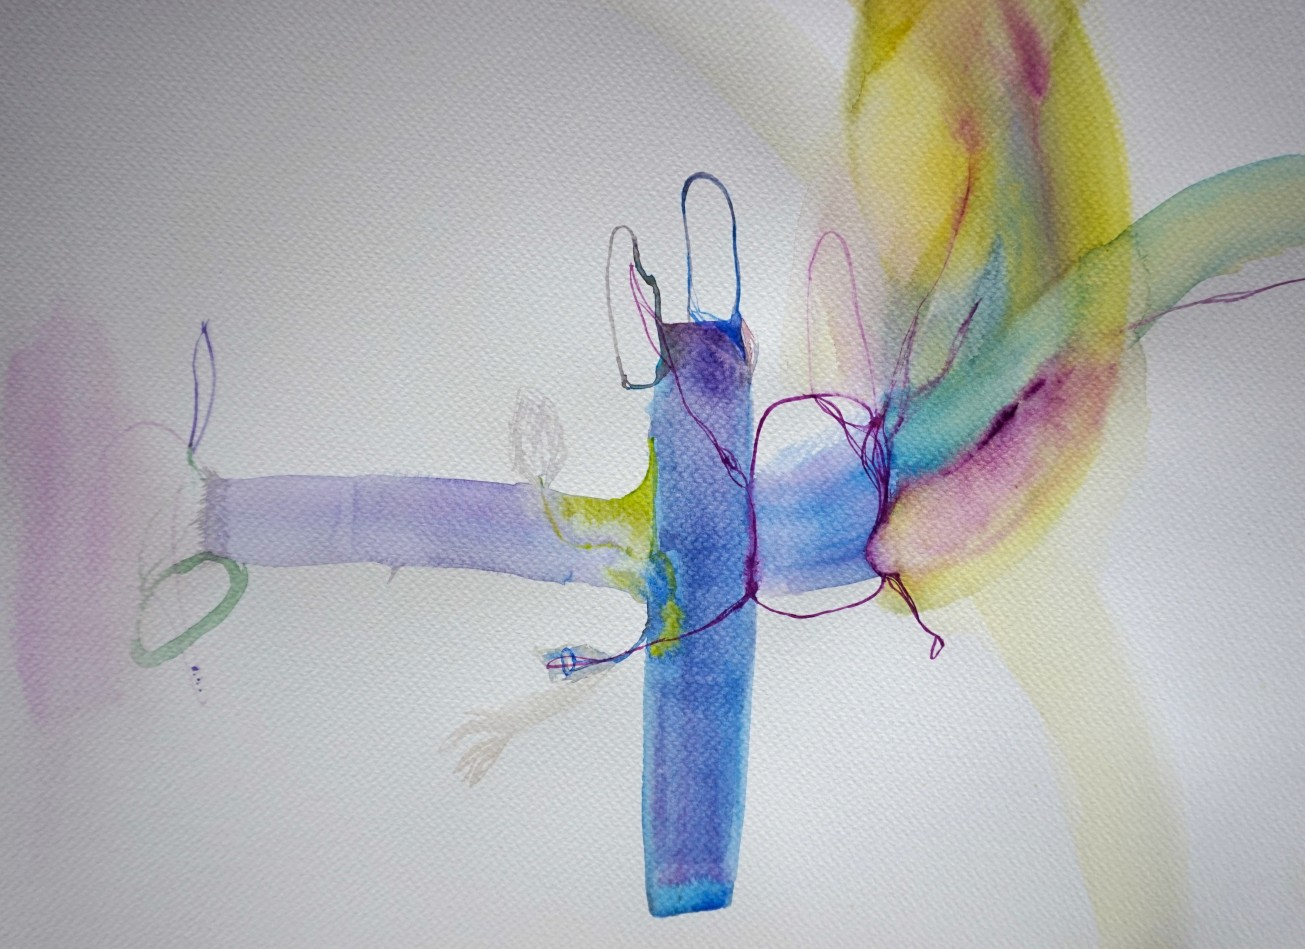 Wired 5, watercolours, 34 x 48 cm, Laura Barbuto, 2014.